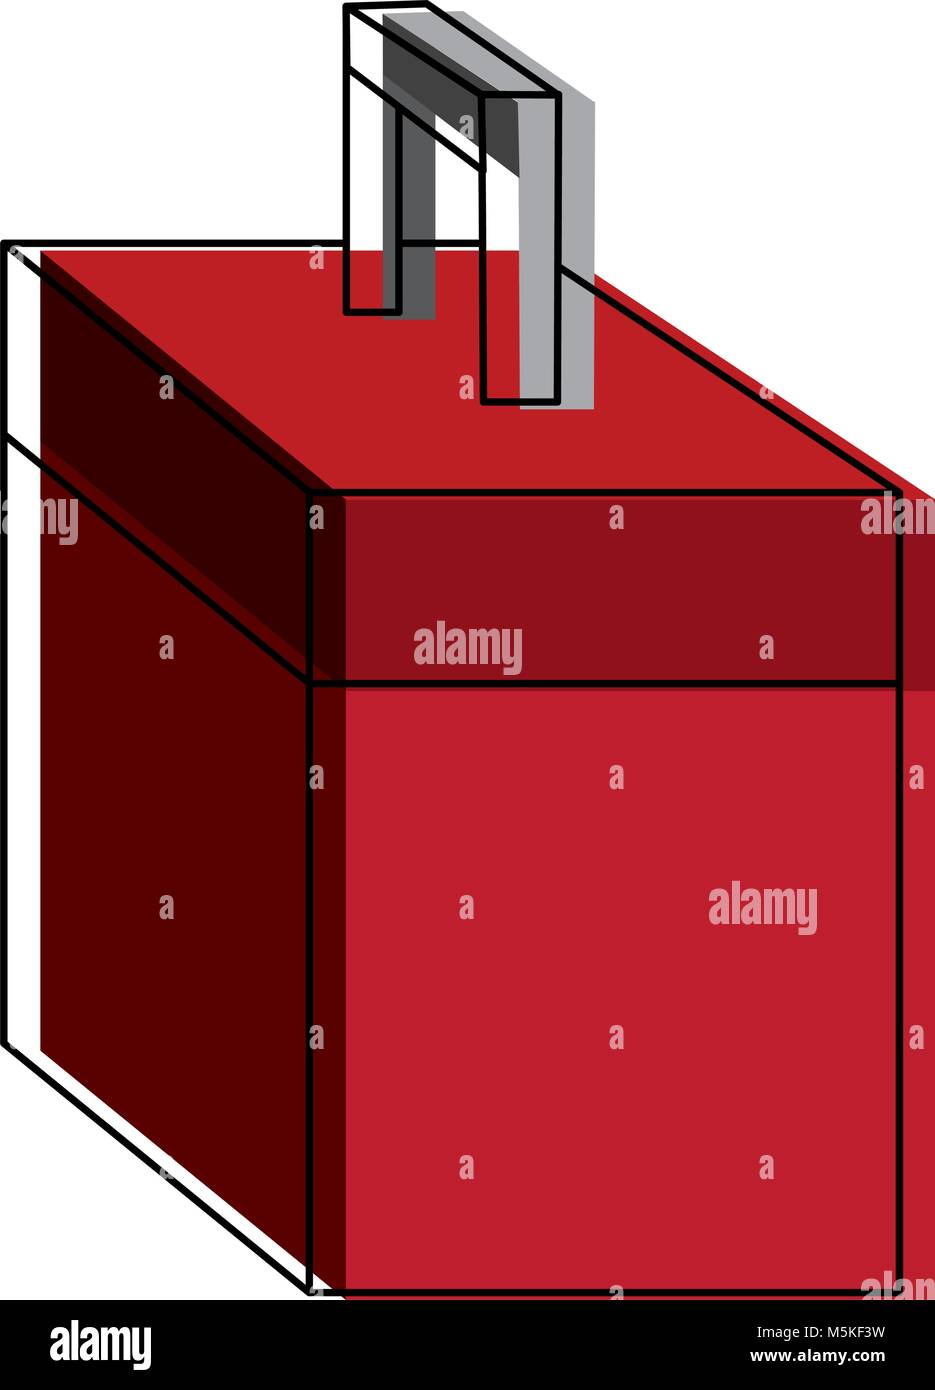 toolbox kit used for construction interiors and building - Stock Image